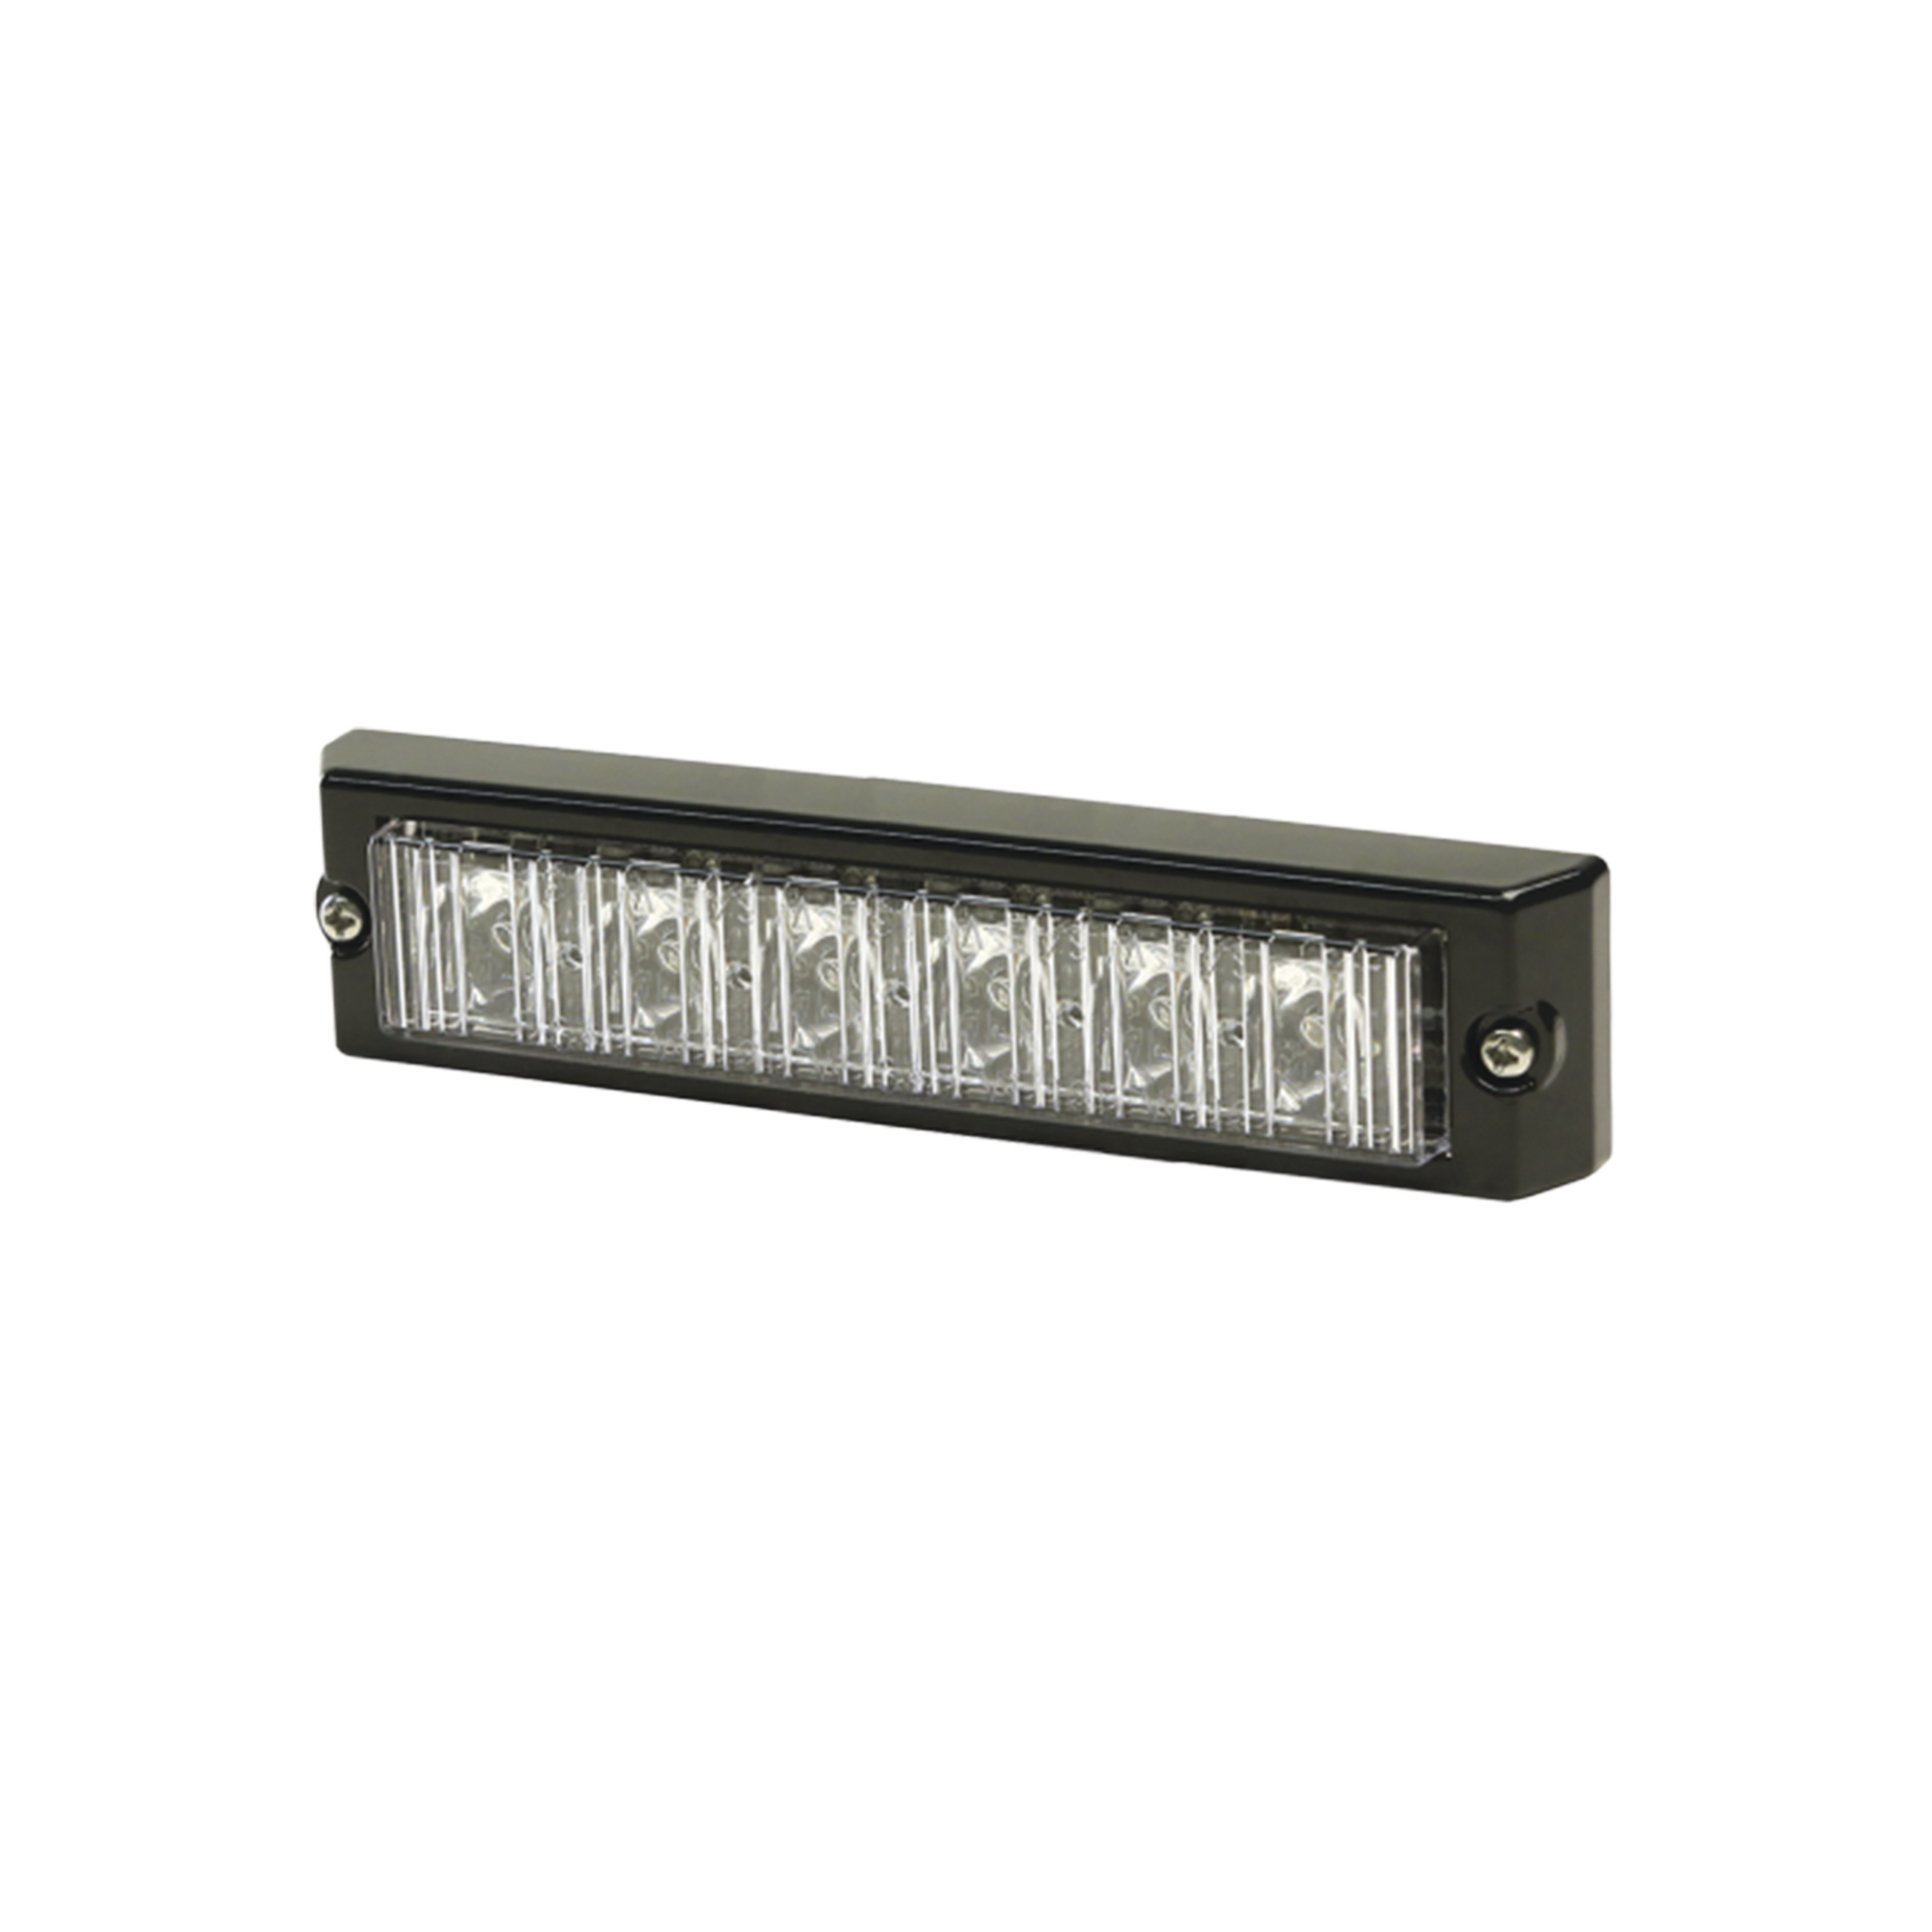 Luz Auxiliar Serie X3705, 6 LEDs Ultra Brillantes, color Claro